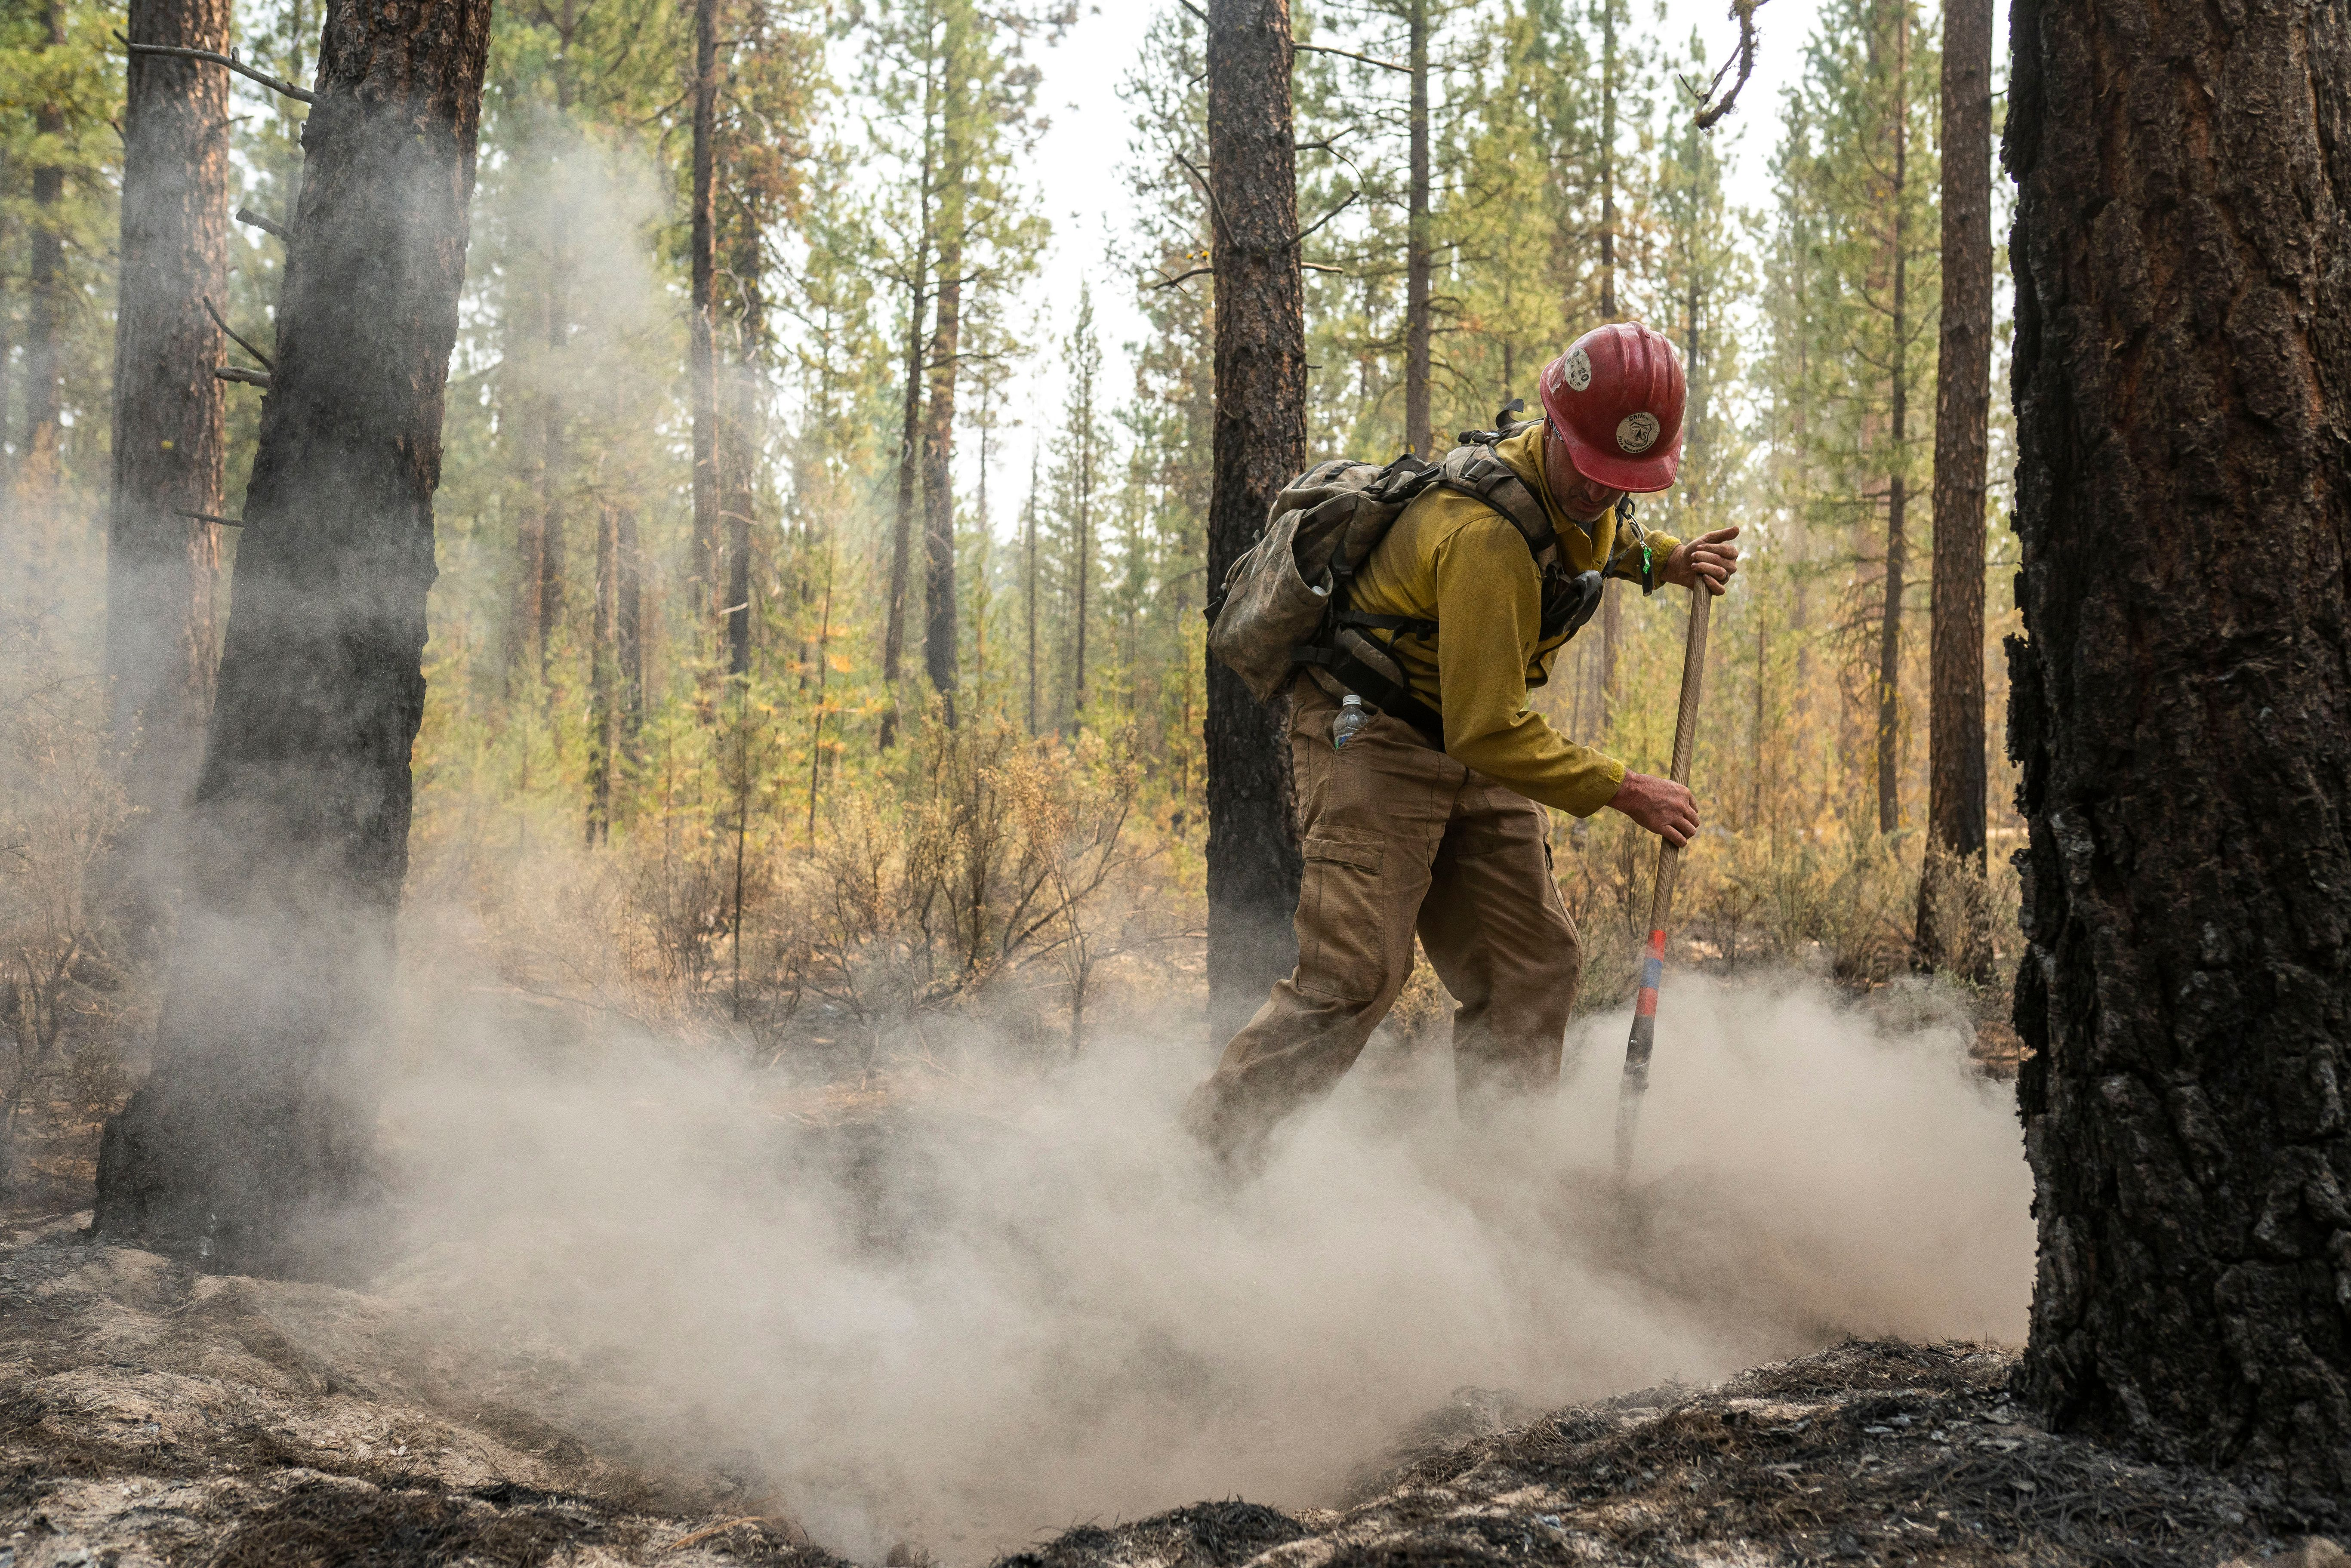 Firefighter Garrett Suza, with the Chiloquin Forest Service, mops up a hot spot on the North East side of the Bootleg Fire.